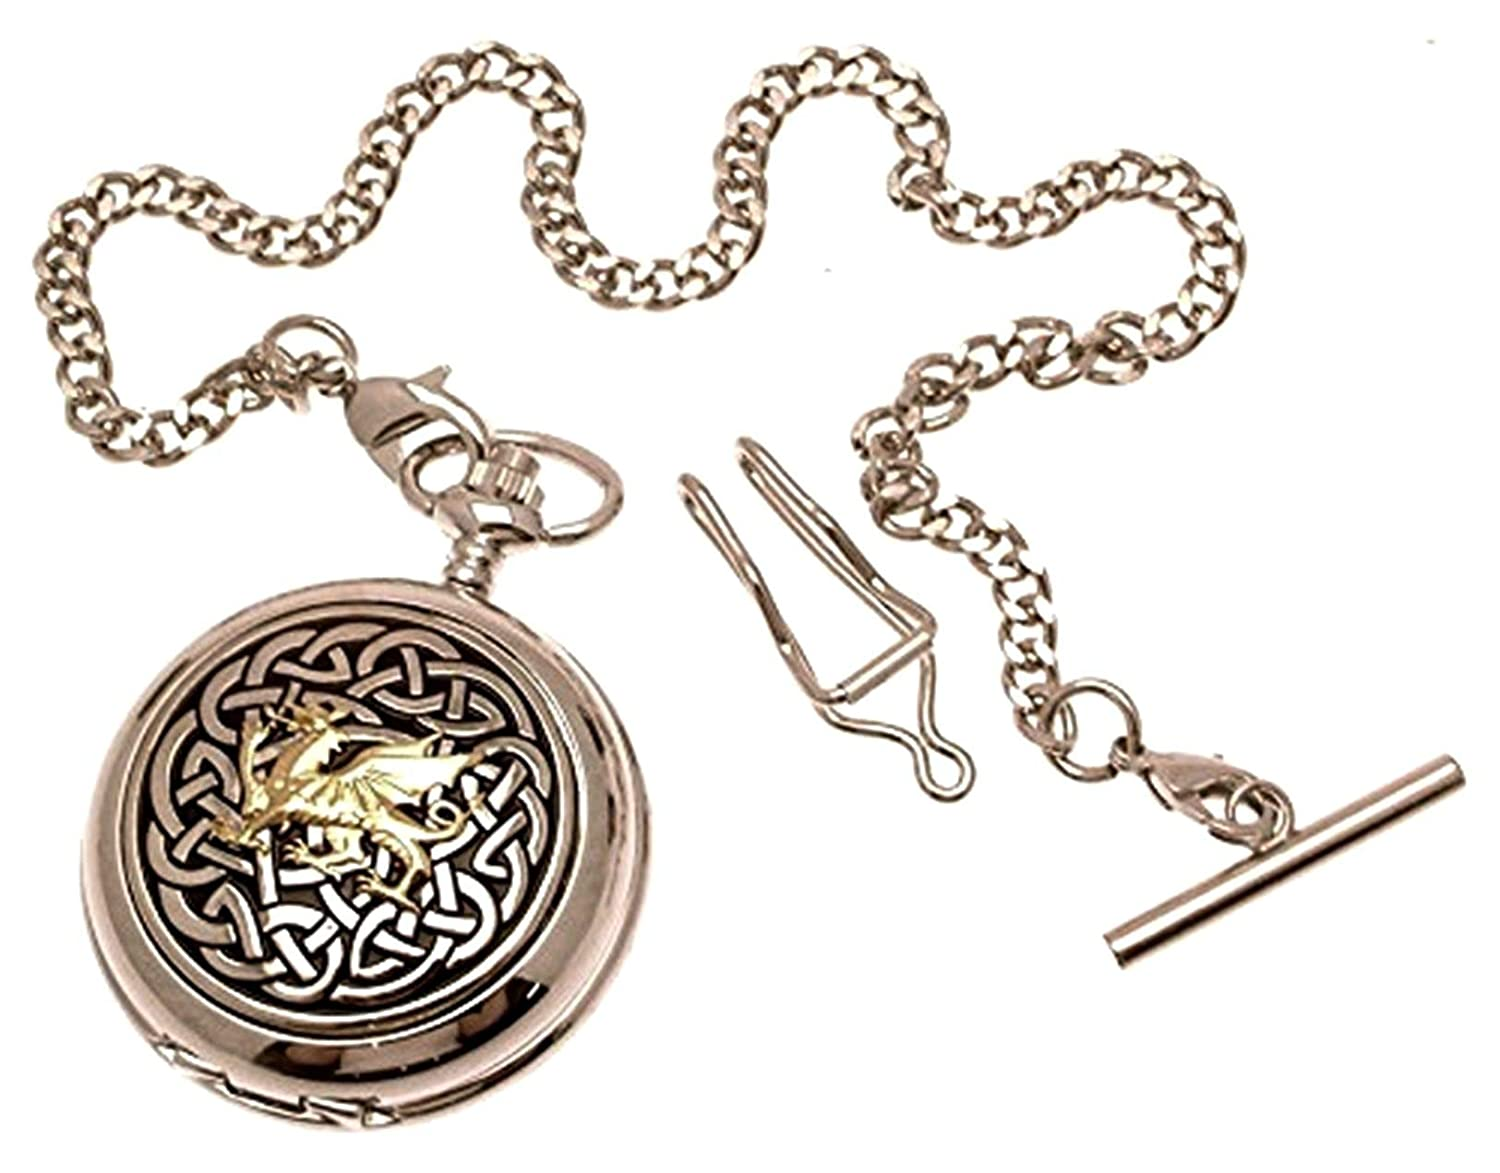 Pocket Watch – Solid Pewter Fronted Quartz Pocket Watch – Two Tone Celtic Knot with Dragon Design 59